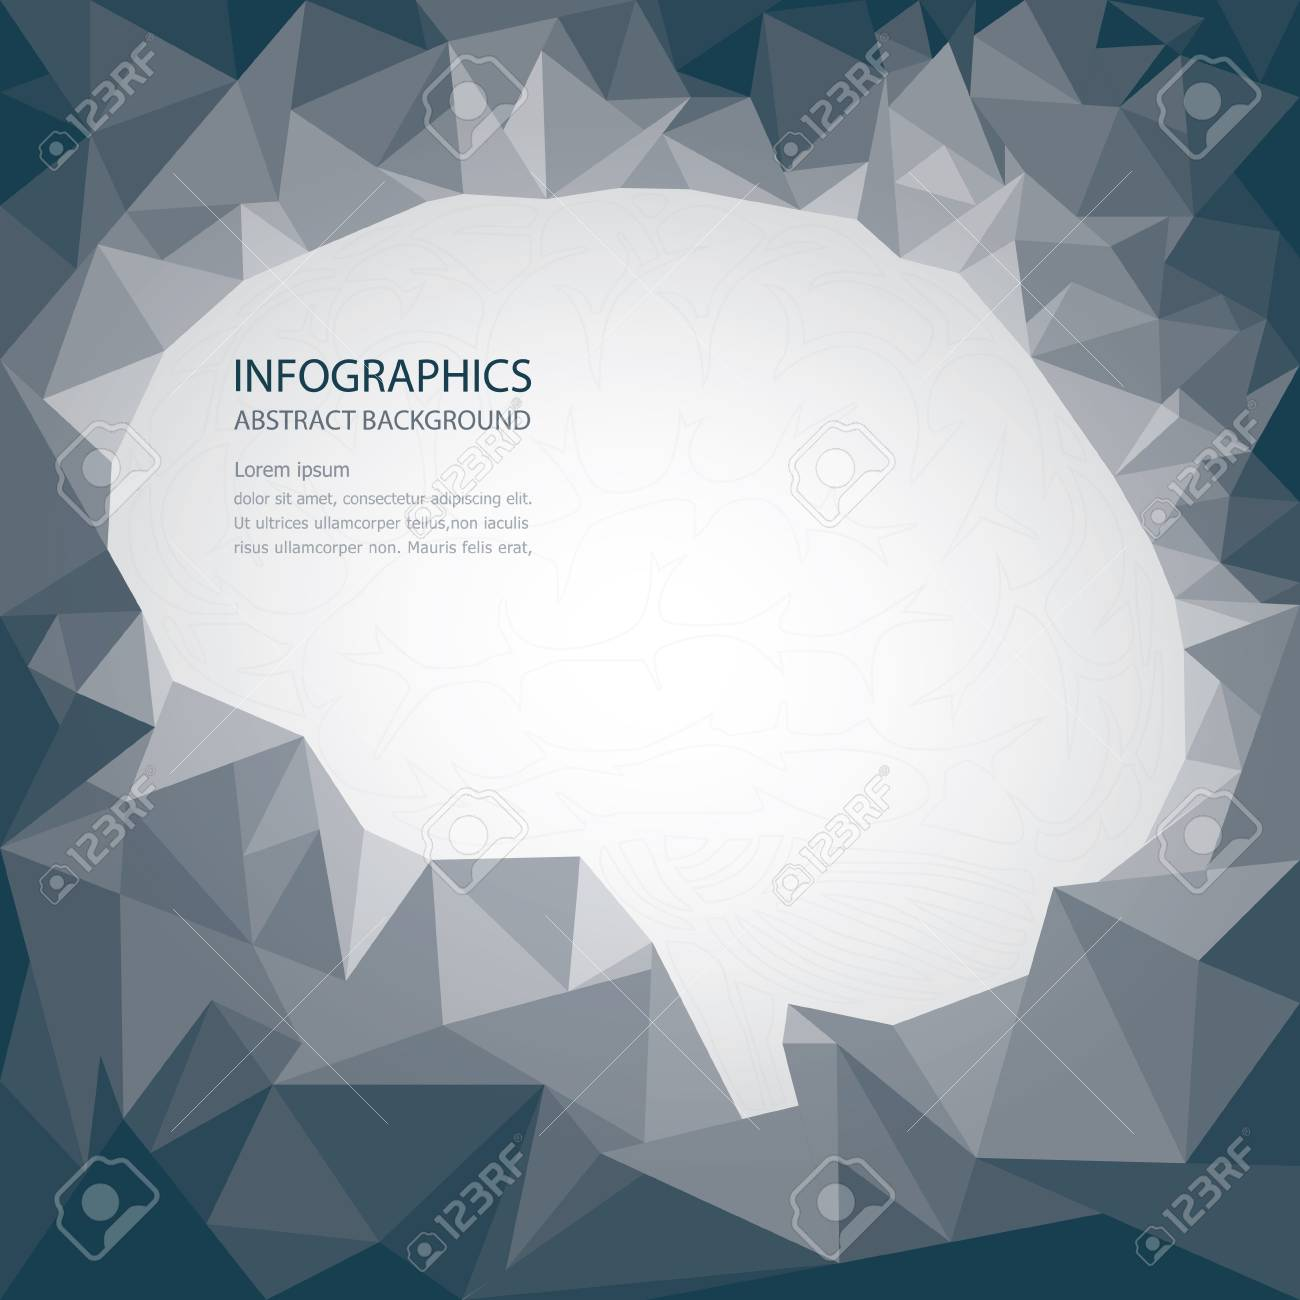 Brain Shape Abstract Background Stock Vector - 22023116